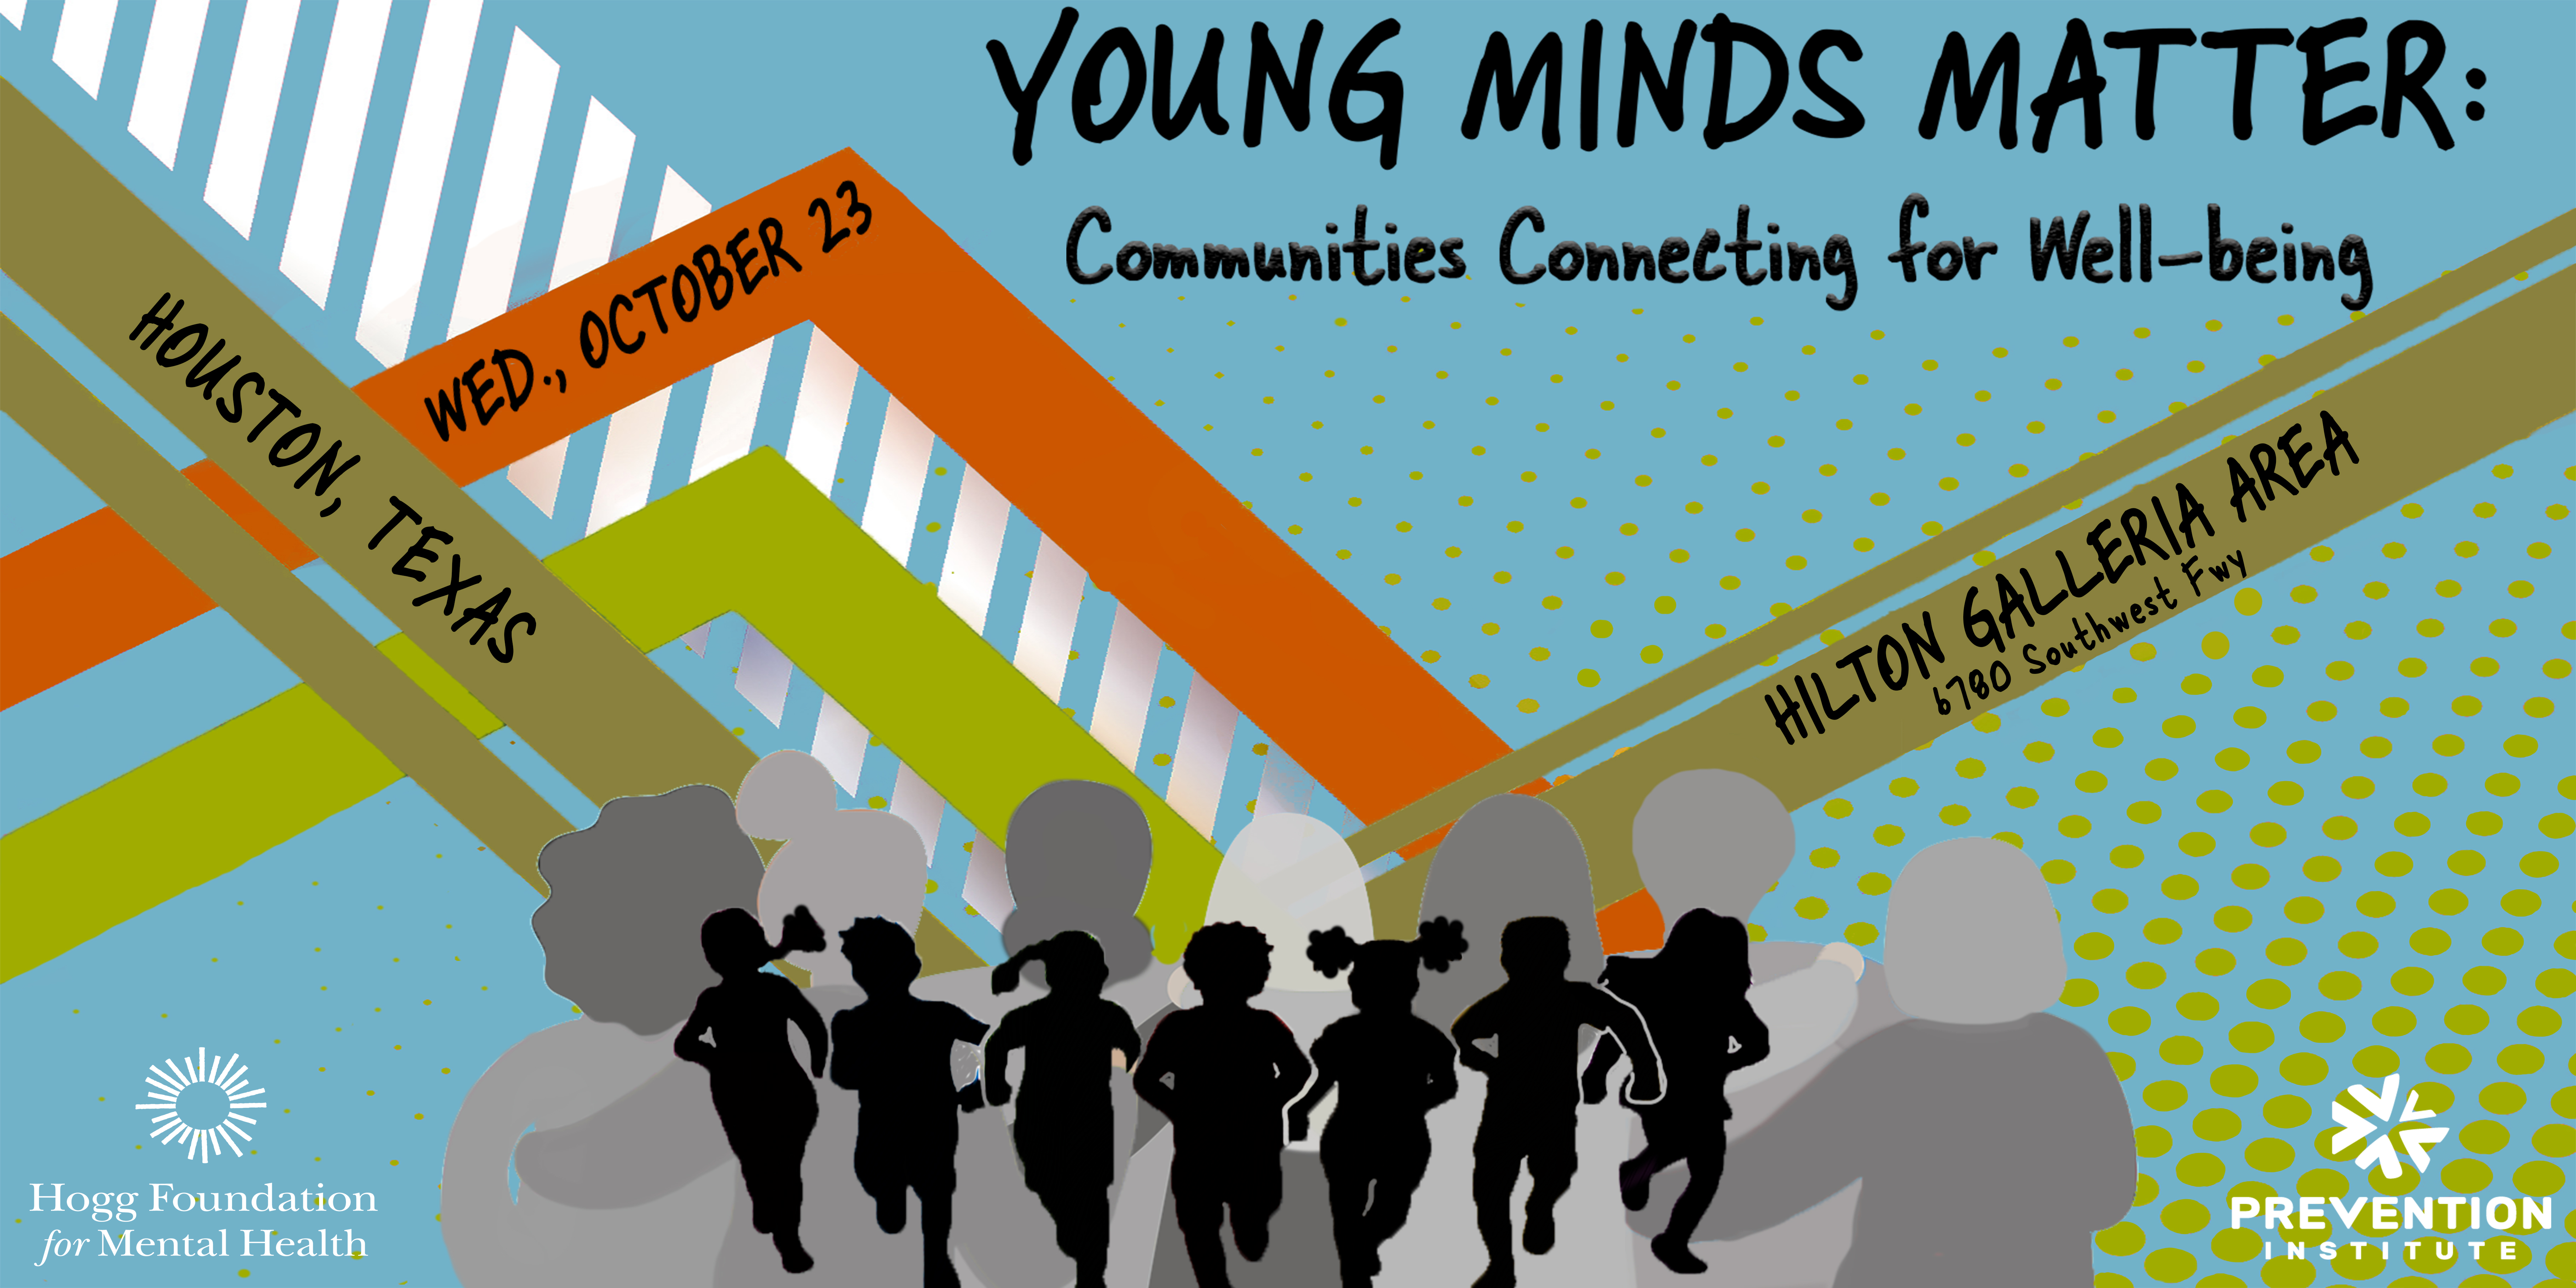 Branded image for the Young Minds Matter seminar